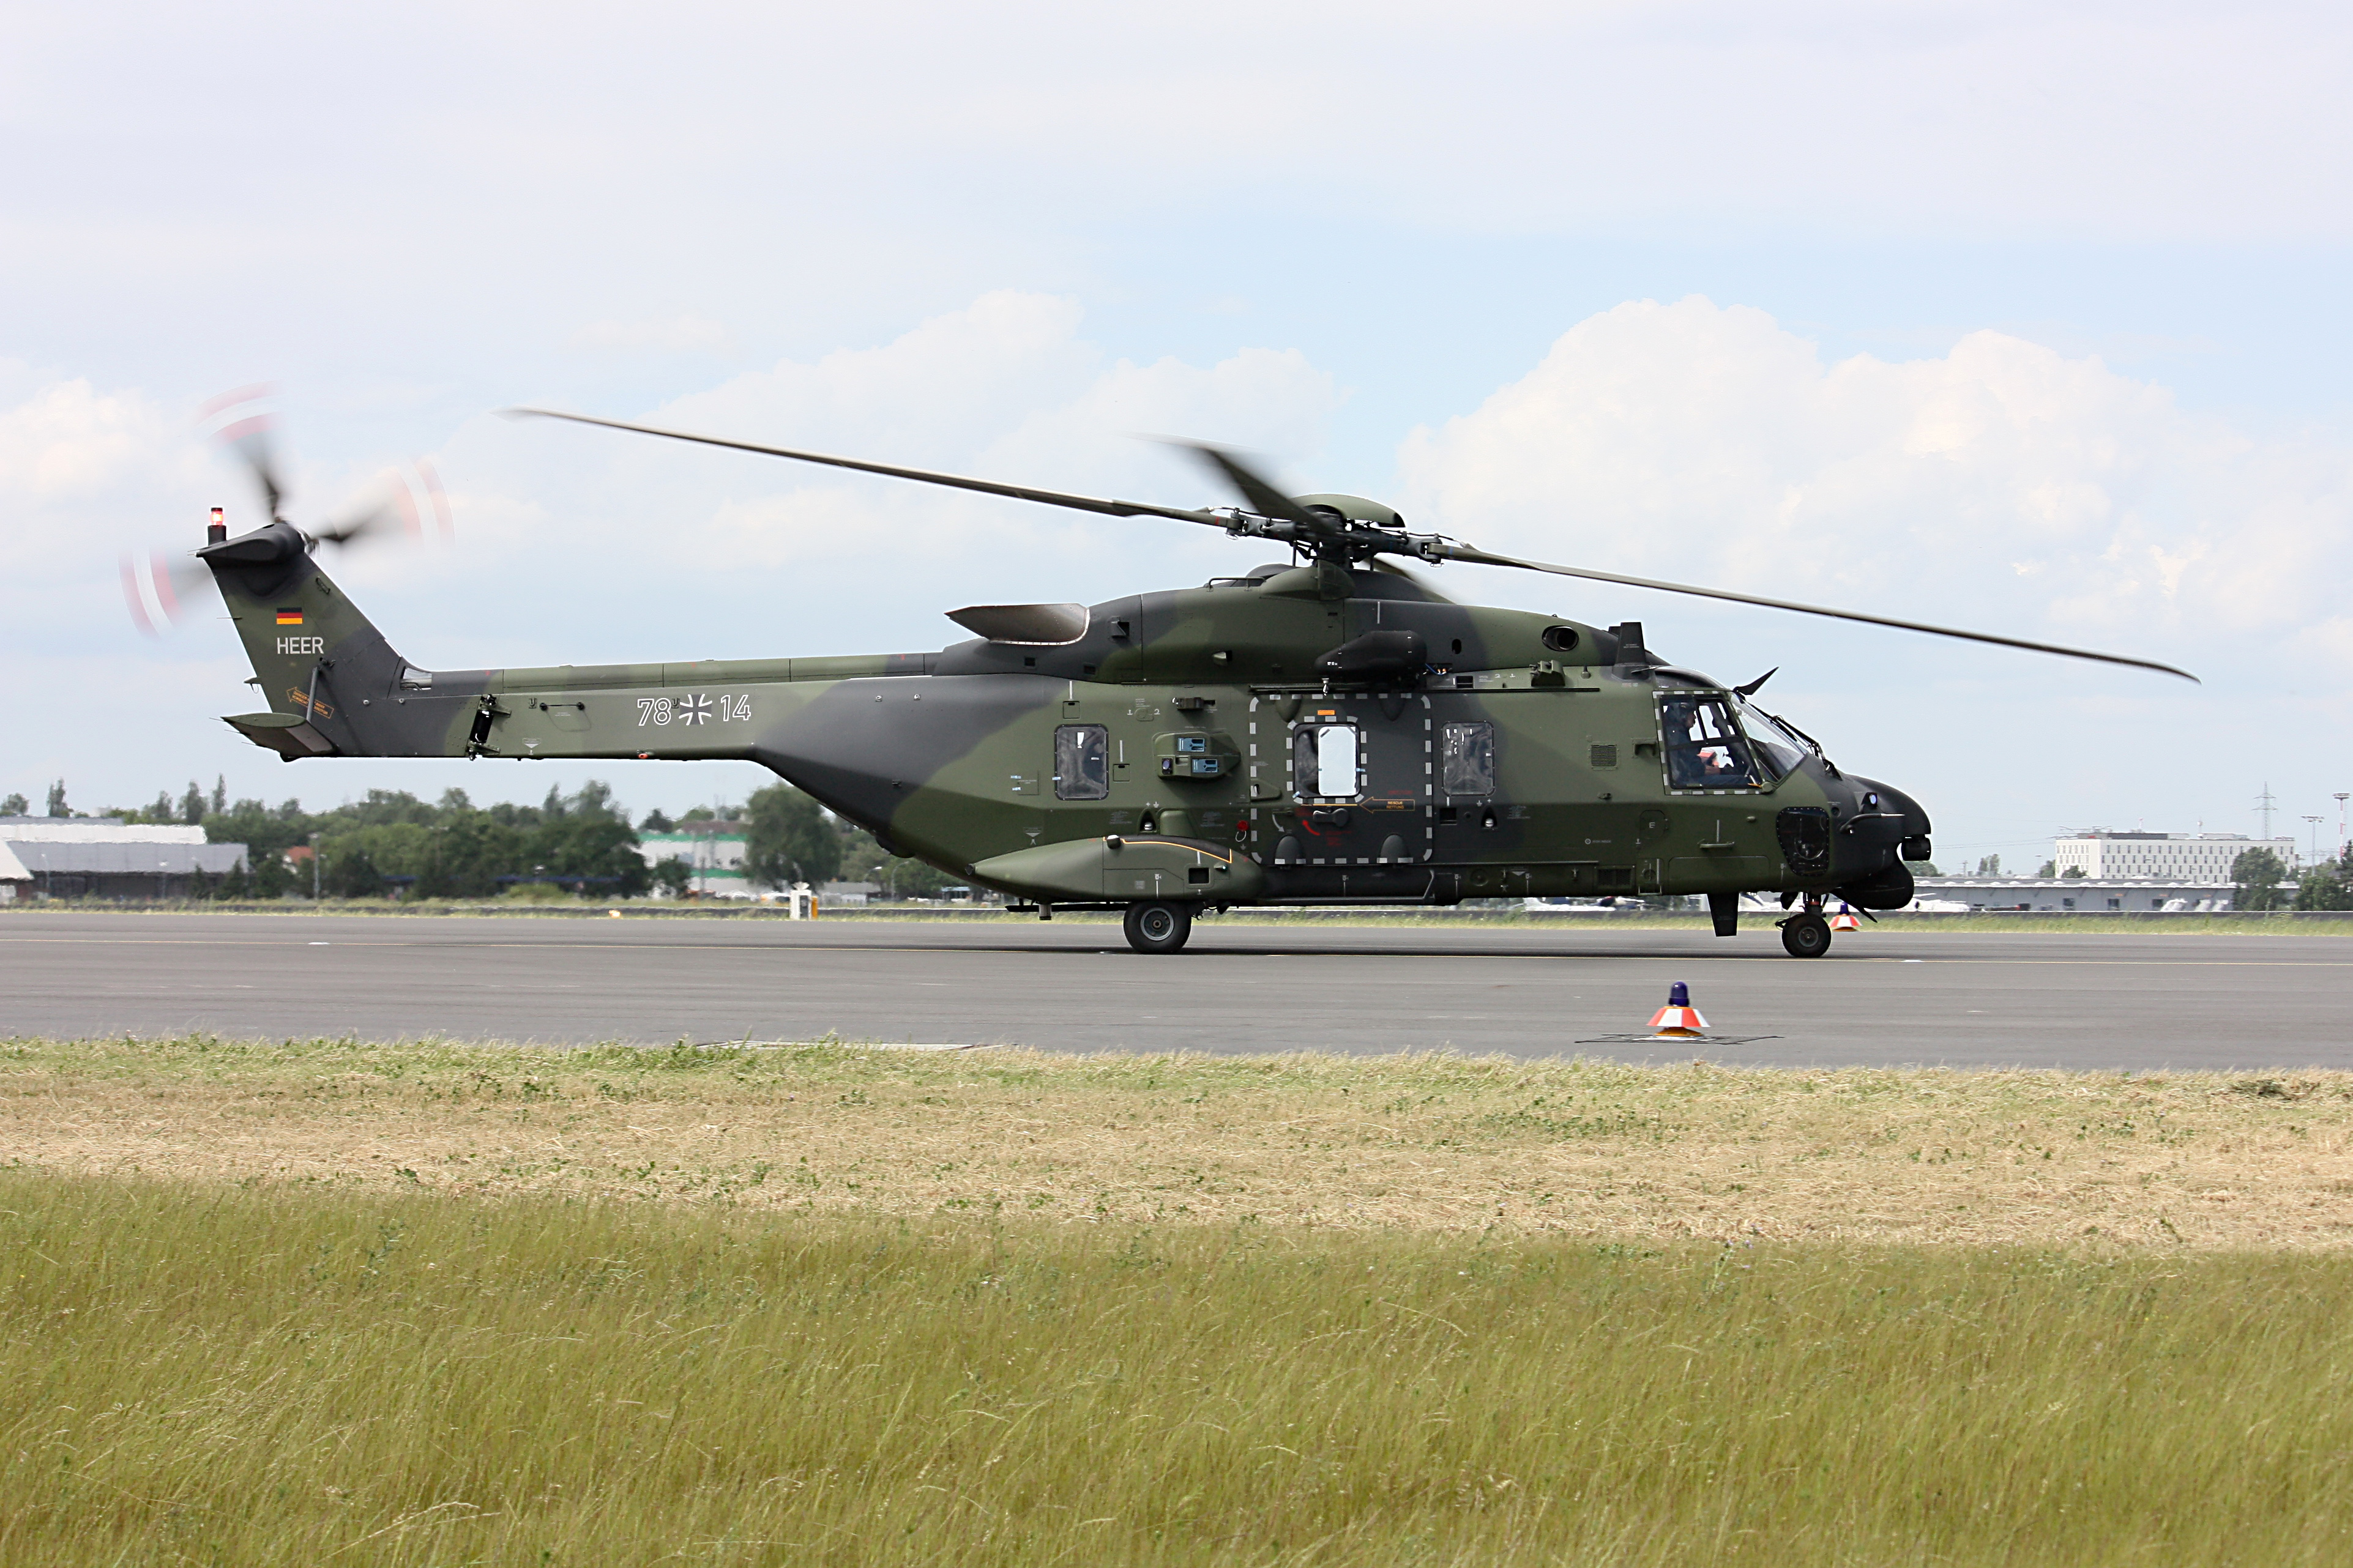 German Military Helicopters